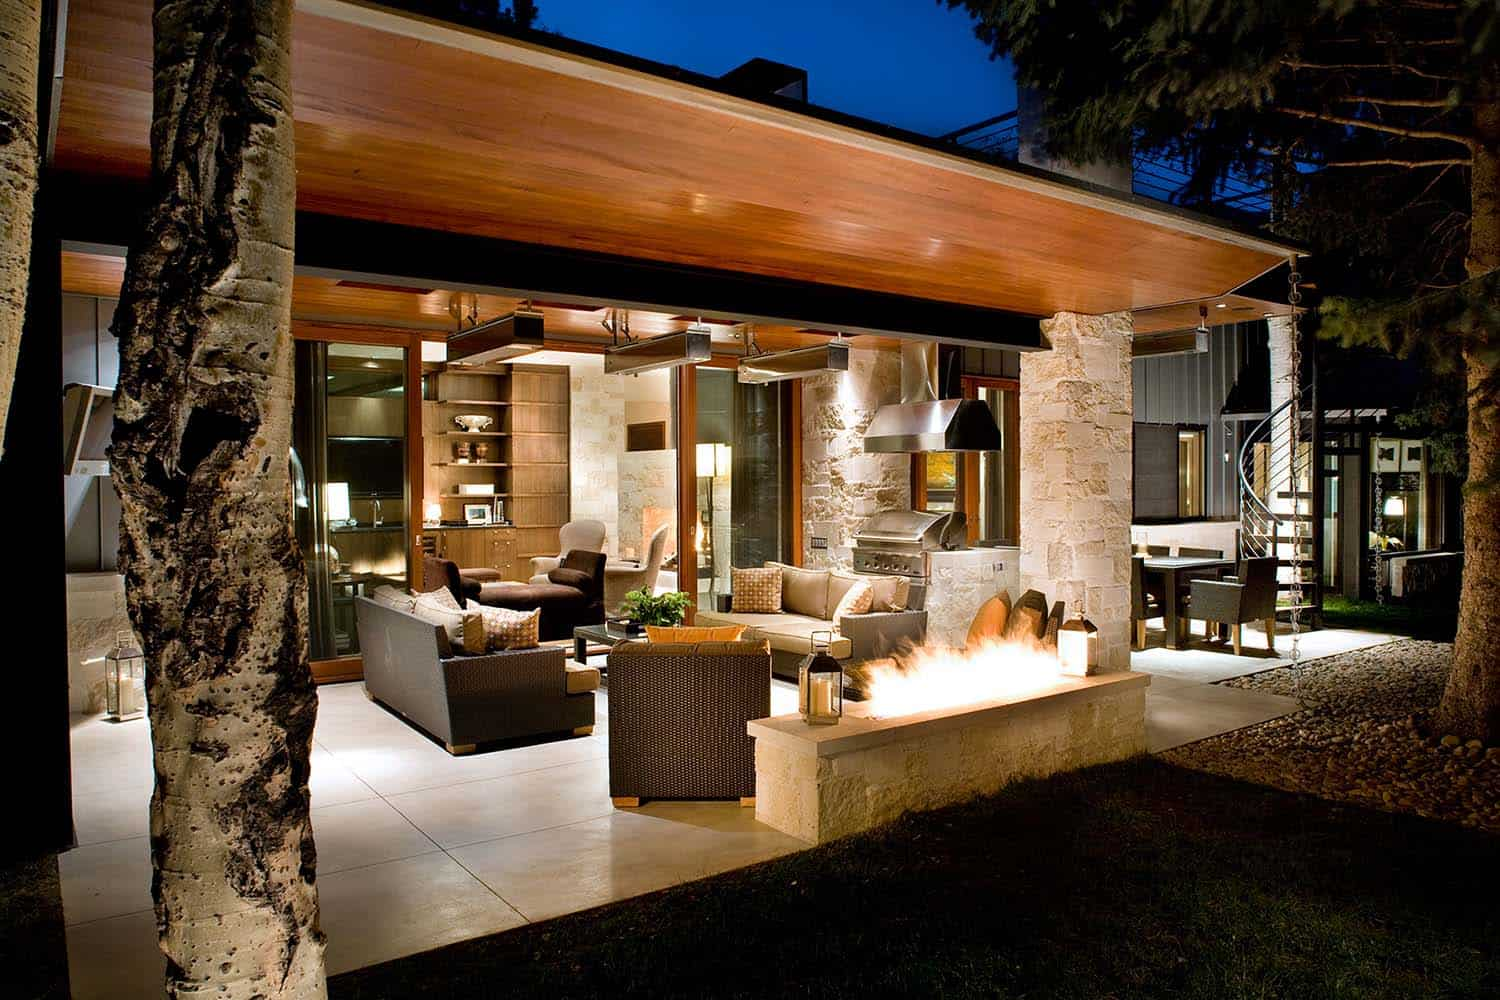 industrial backyard ideas, forest backyard ideas, townhouse backyard ideas, oriental backyard ideas, cabin backyard ideas, custom backyard ideas, barbecue backyard ideas, waterfront backyard ideas, barn backyard ideas, vacation backyard ideas, farmhouse backyard ideas, traditional backyard ideas, cape cod backyard ideas, duplex backyard ideas, mission backyard ideas, craftsman backyard ideas, english backyard ideas, french backyard ideas, cowboy backyard ideas, on ranch addition ideas backyard